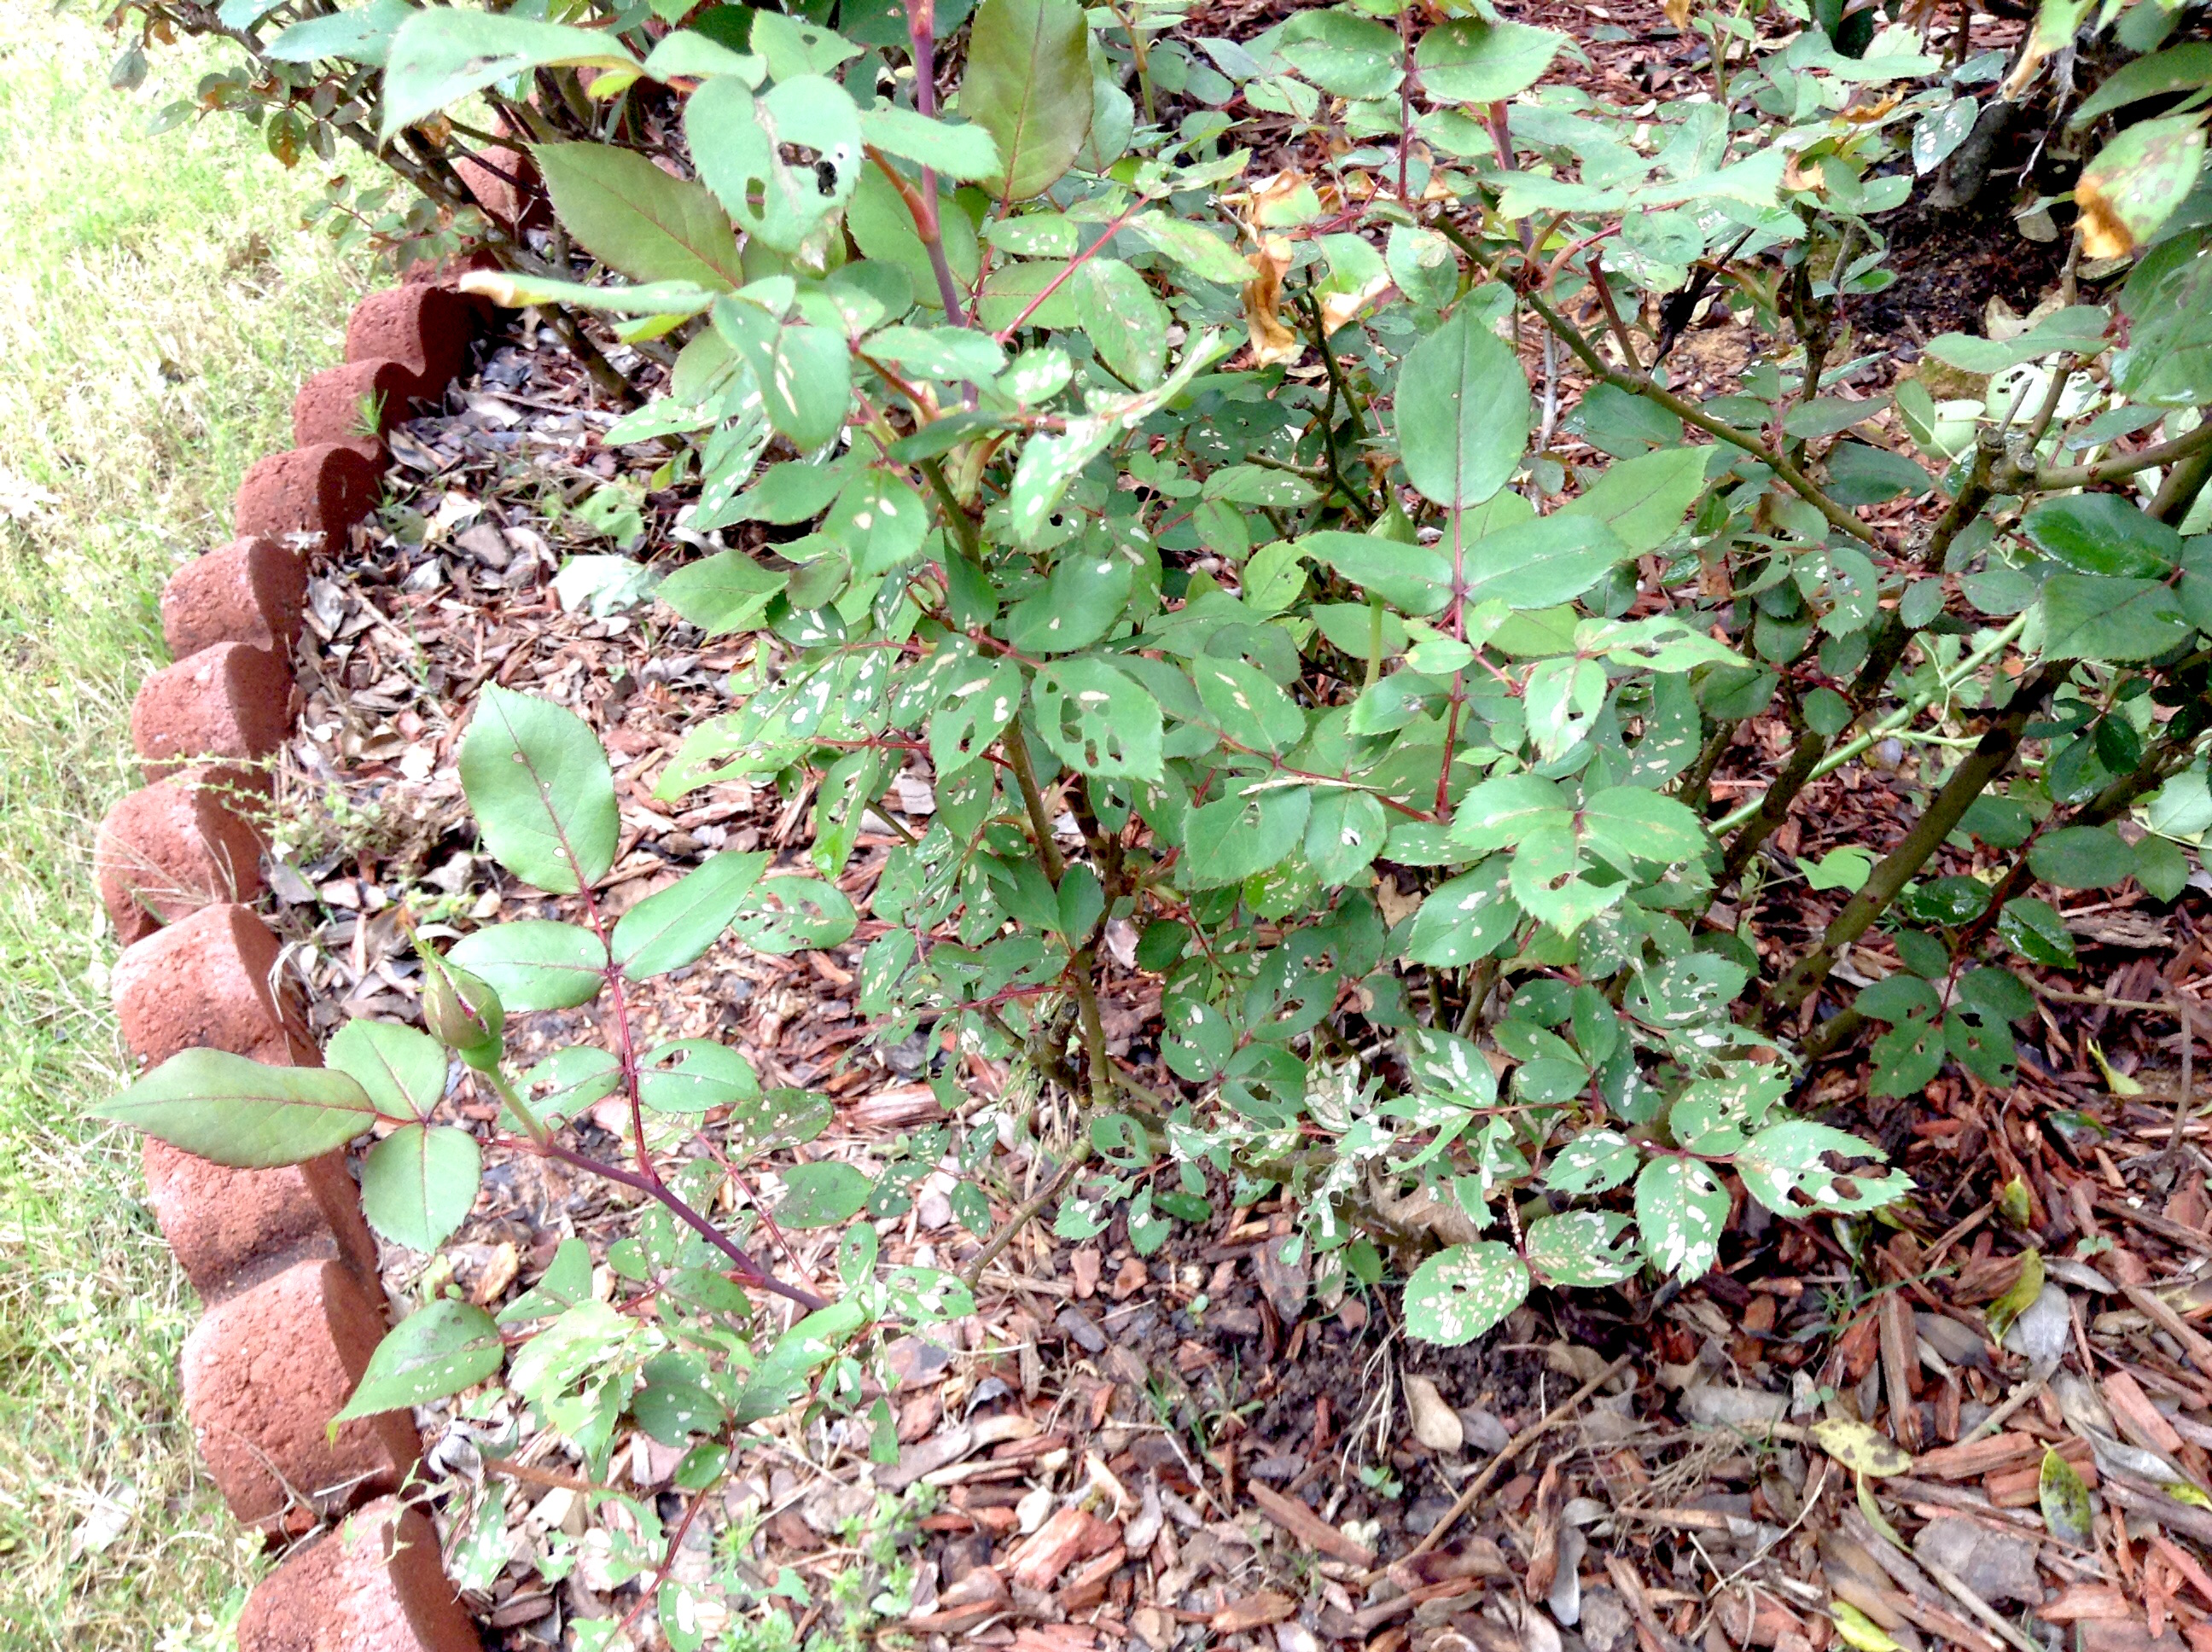 Sawfly damage on roses